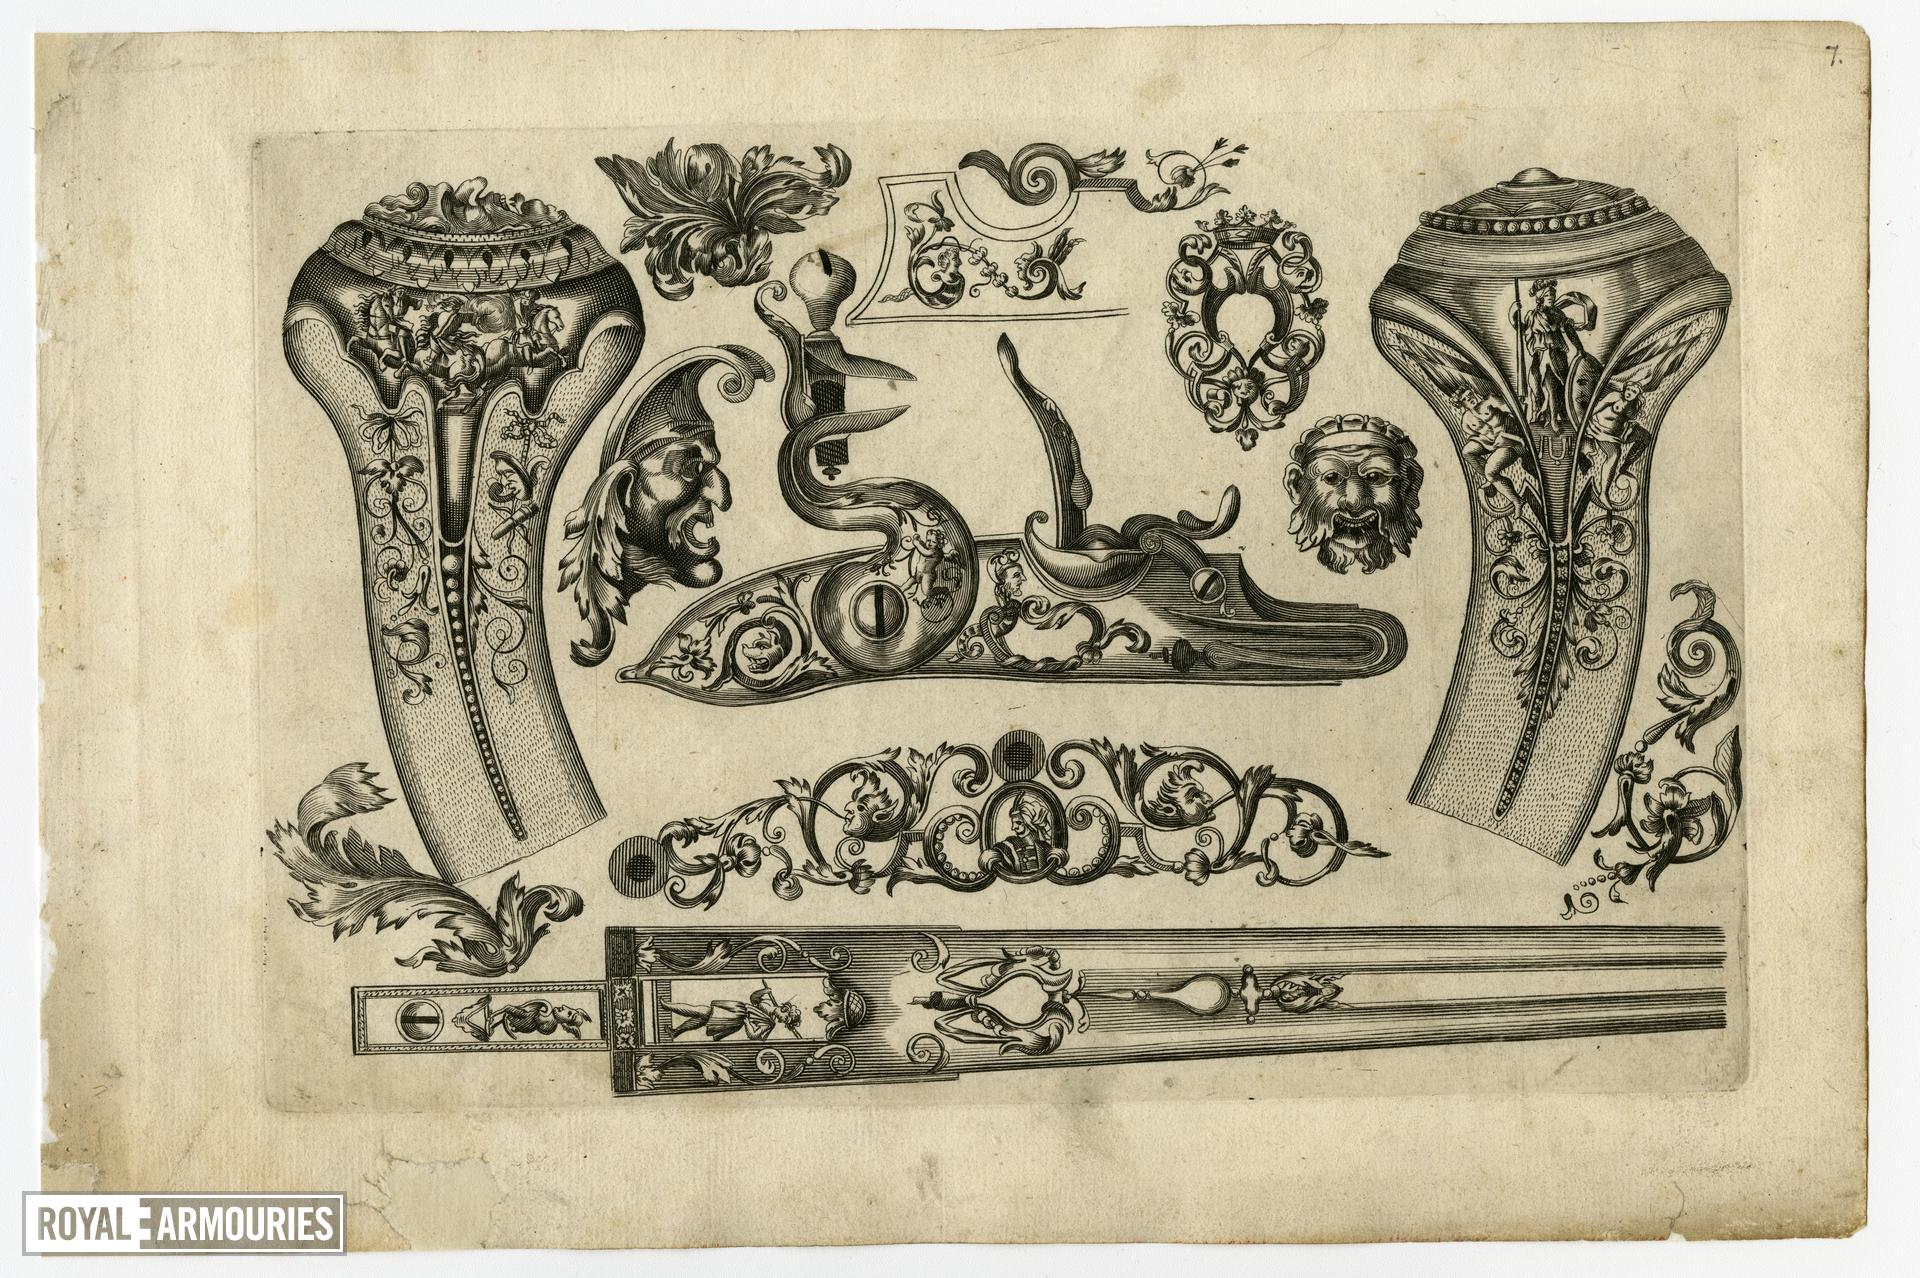 7/8 leaves of engraved ornament for parts of flintlocks.